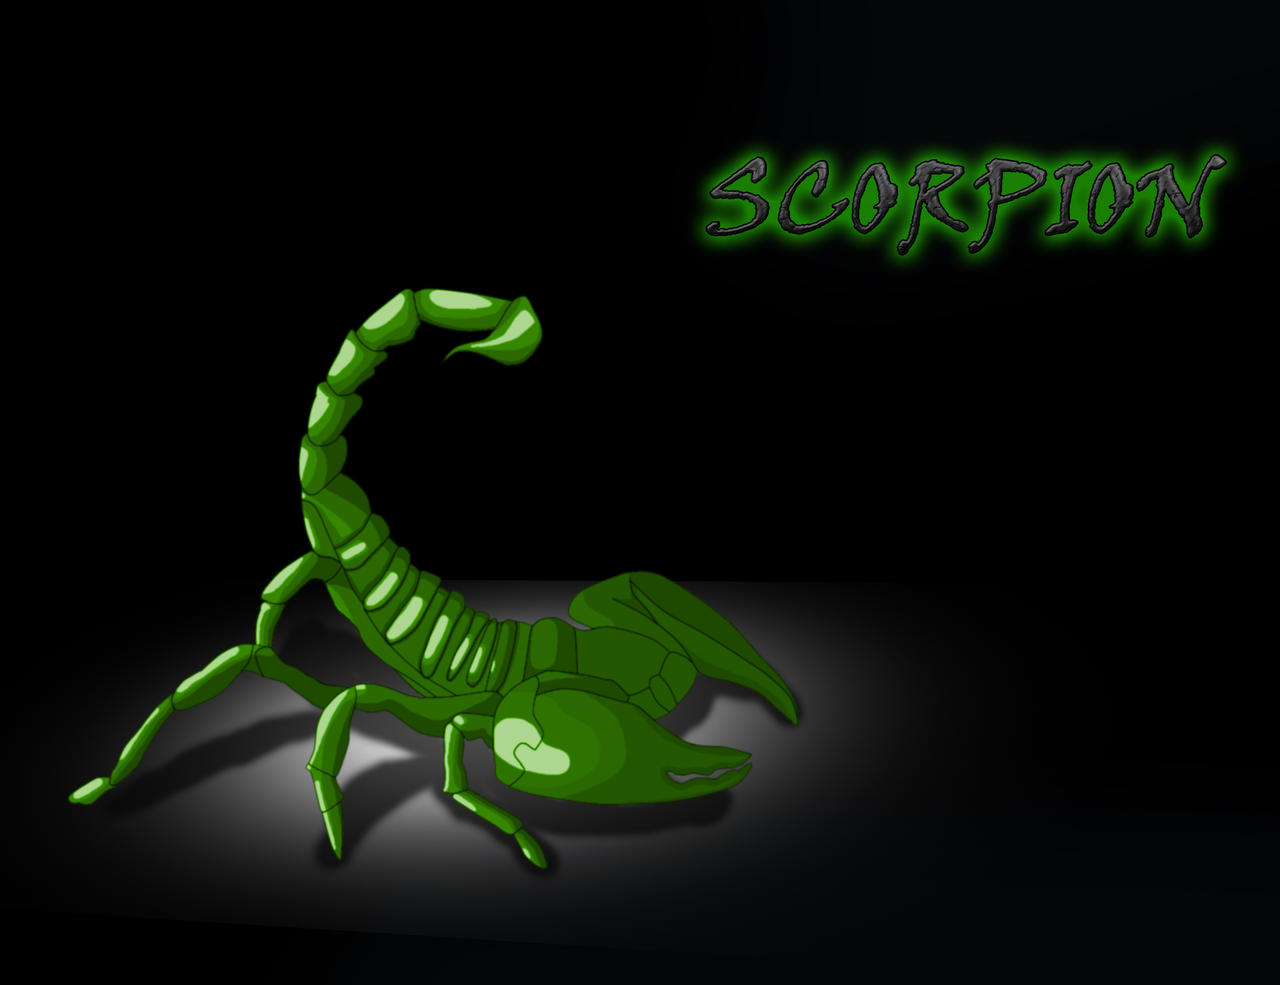 Green Scorpion Wallpaper by DOGGMAFFIA